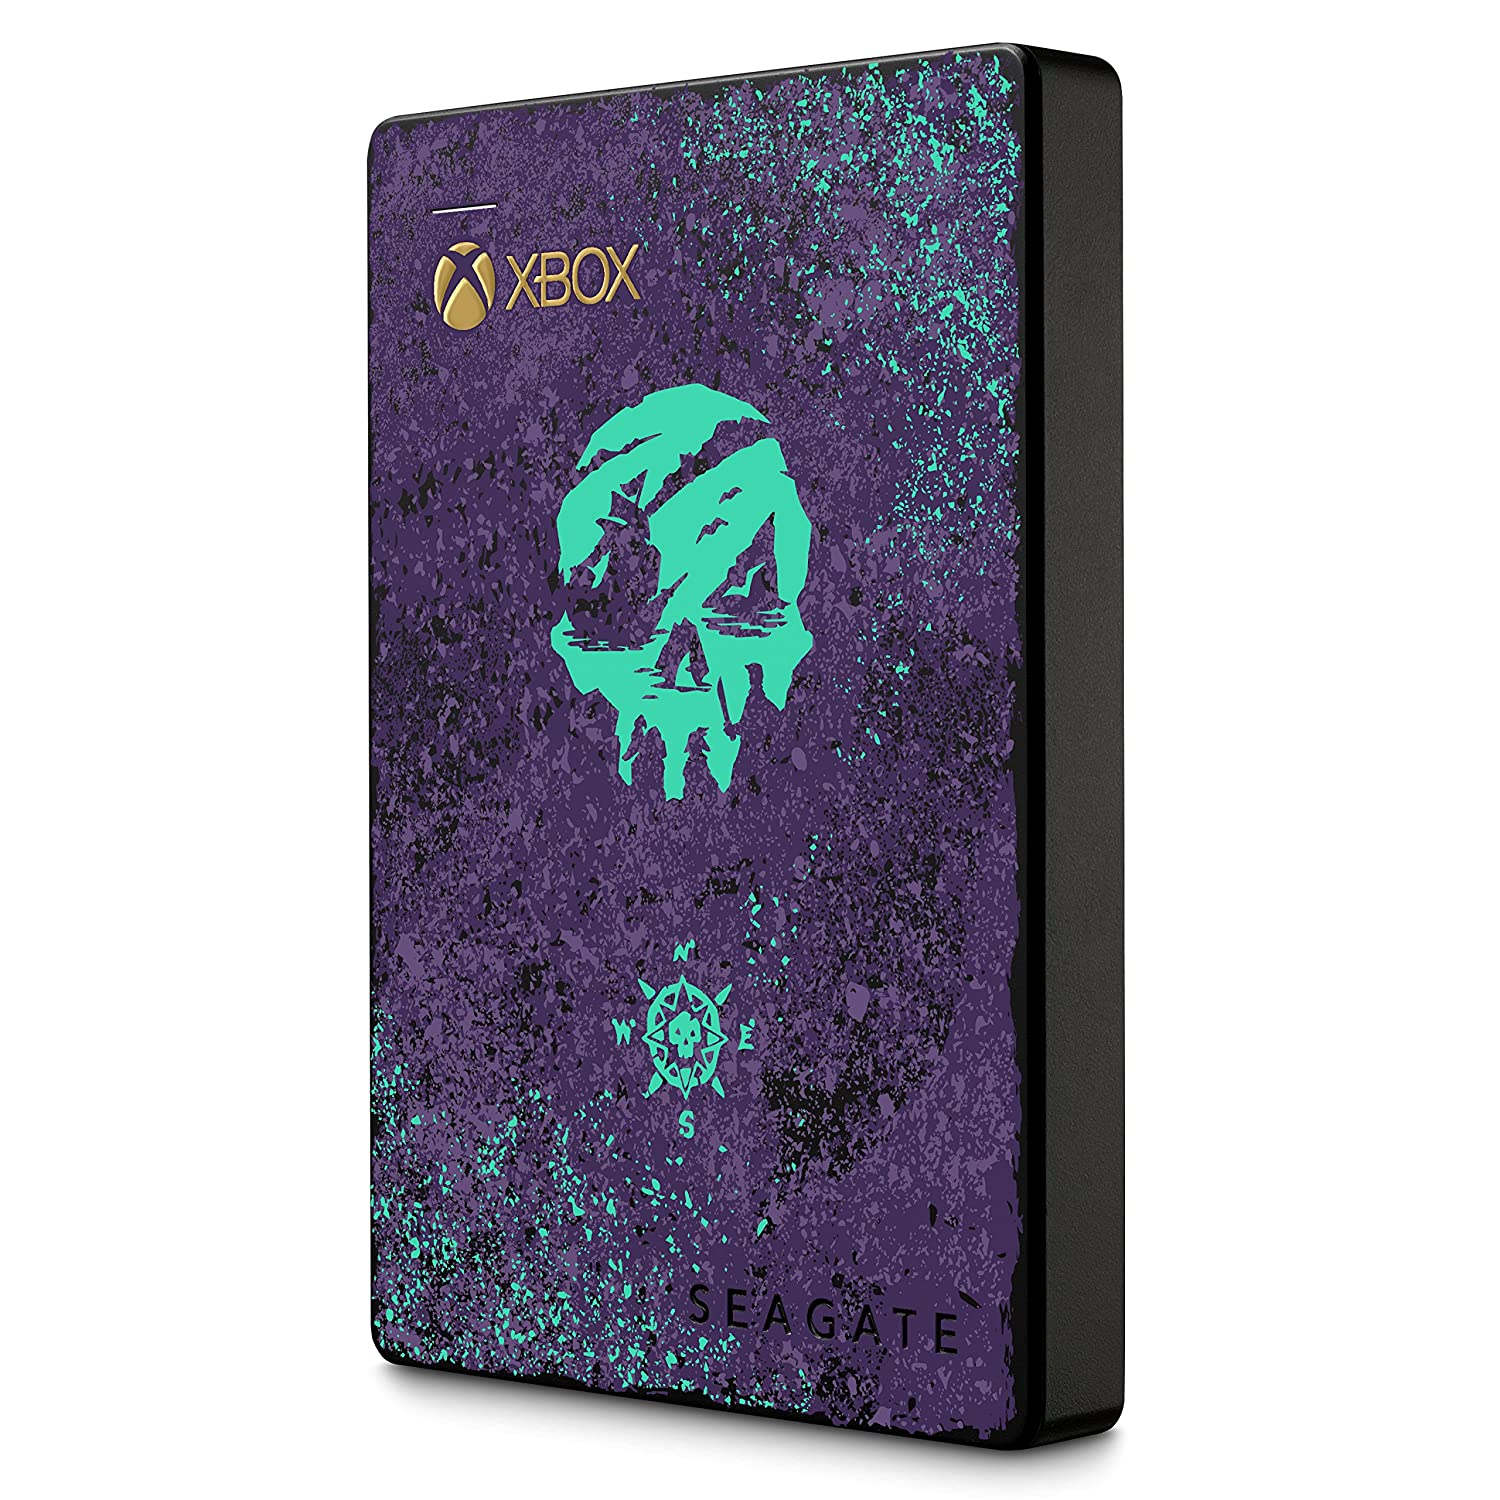 Amazon.com: Seagate 2TB Game Drive for Xbox, Sea of Thieves Special ...